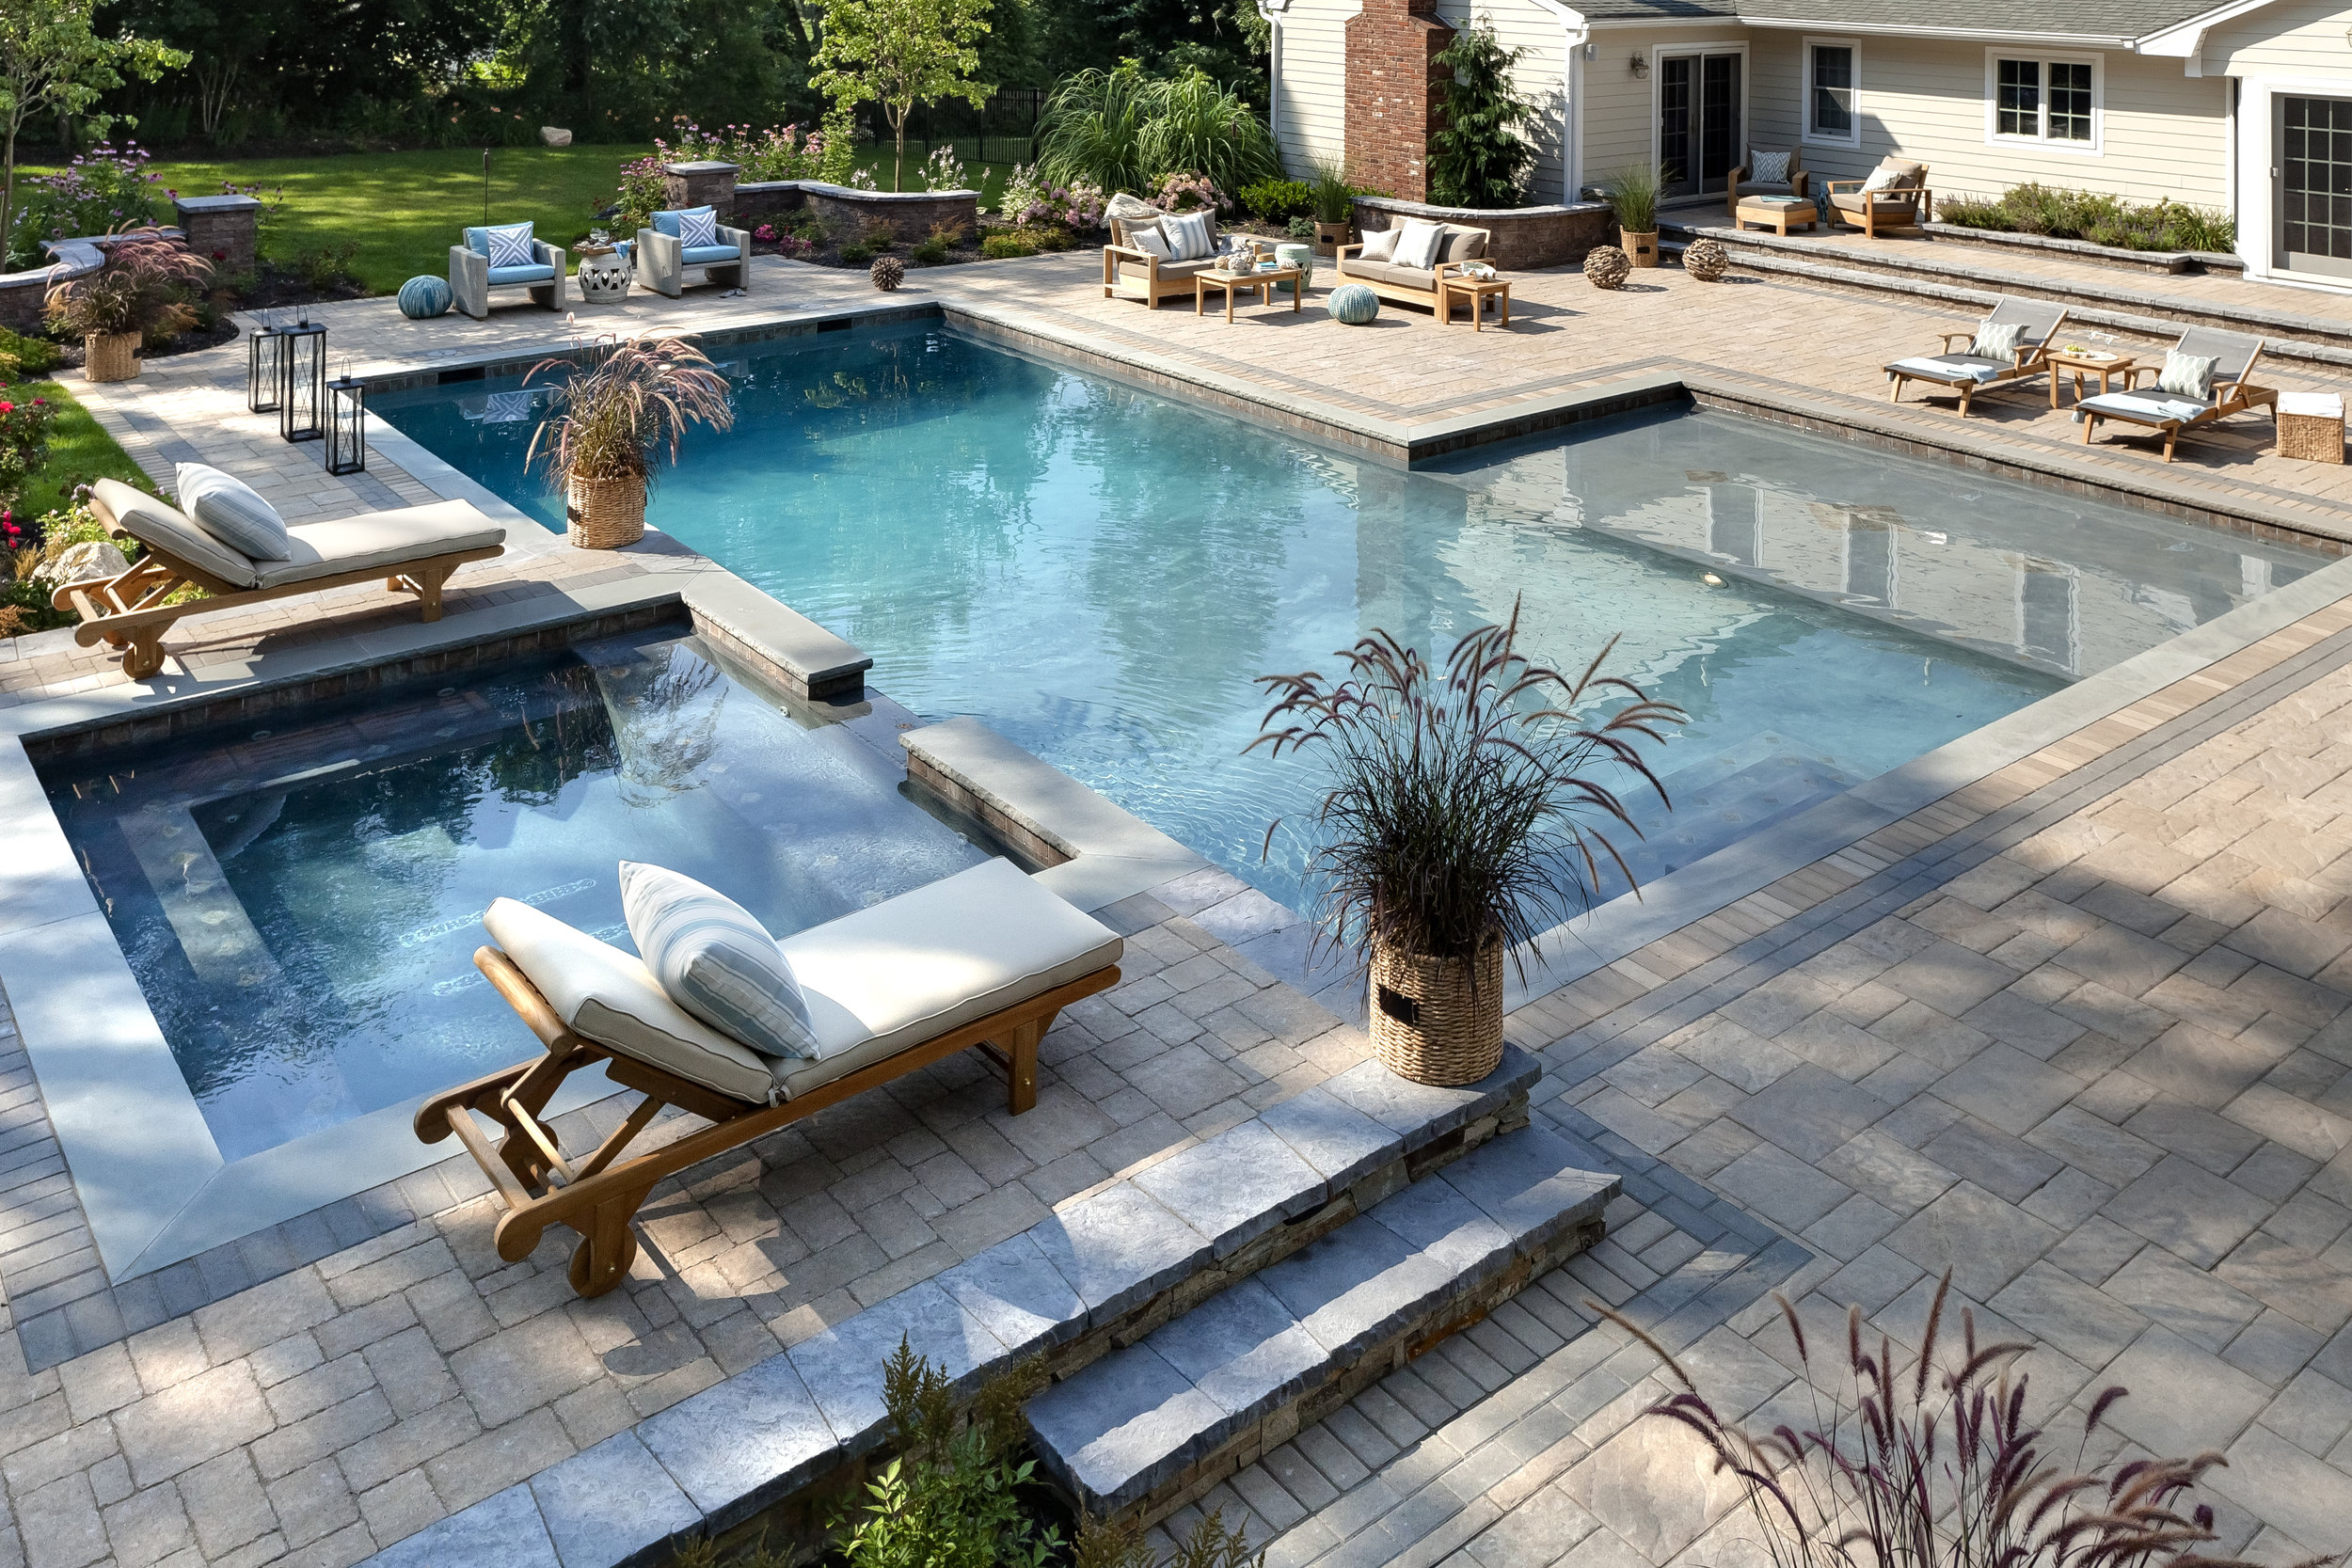 How to Find the Best Gunite Pool Builder in the Smithtown, NY, Area